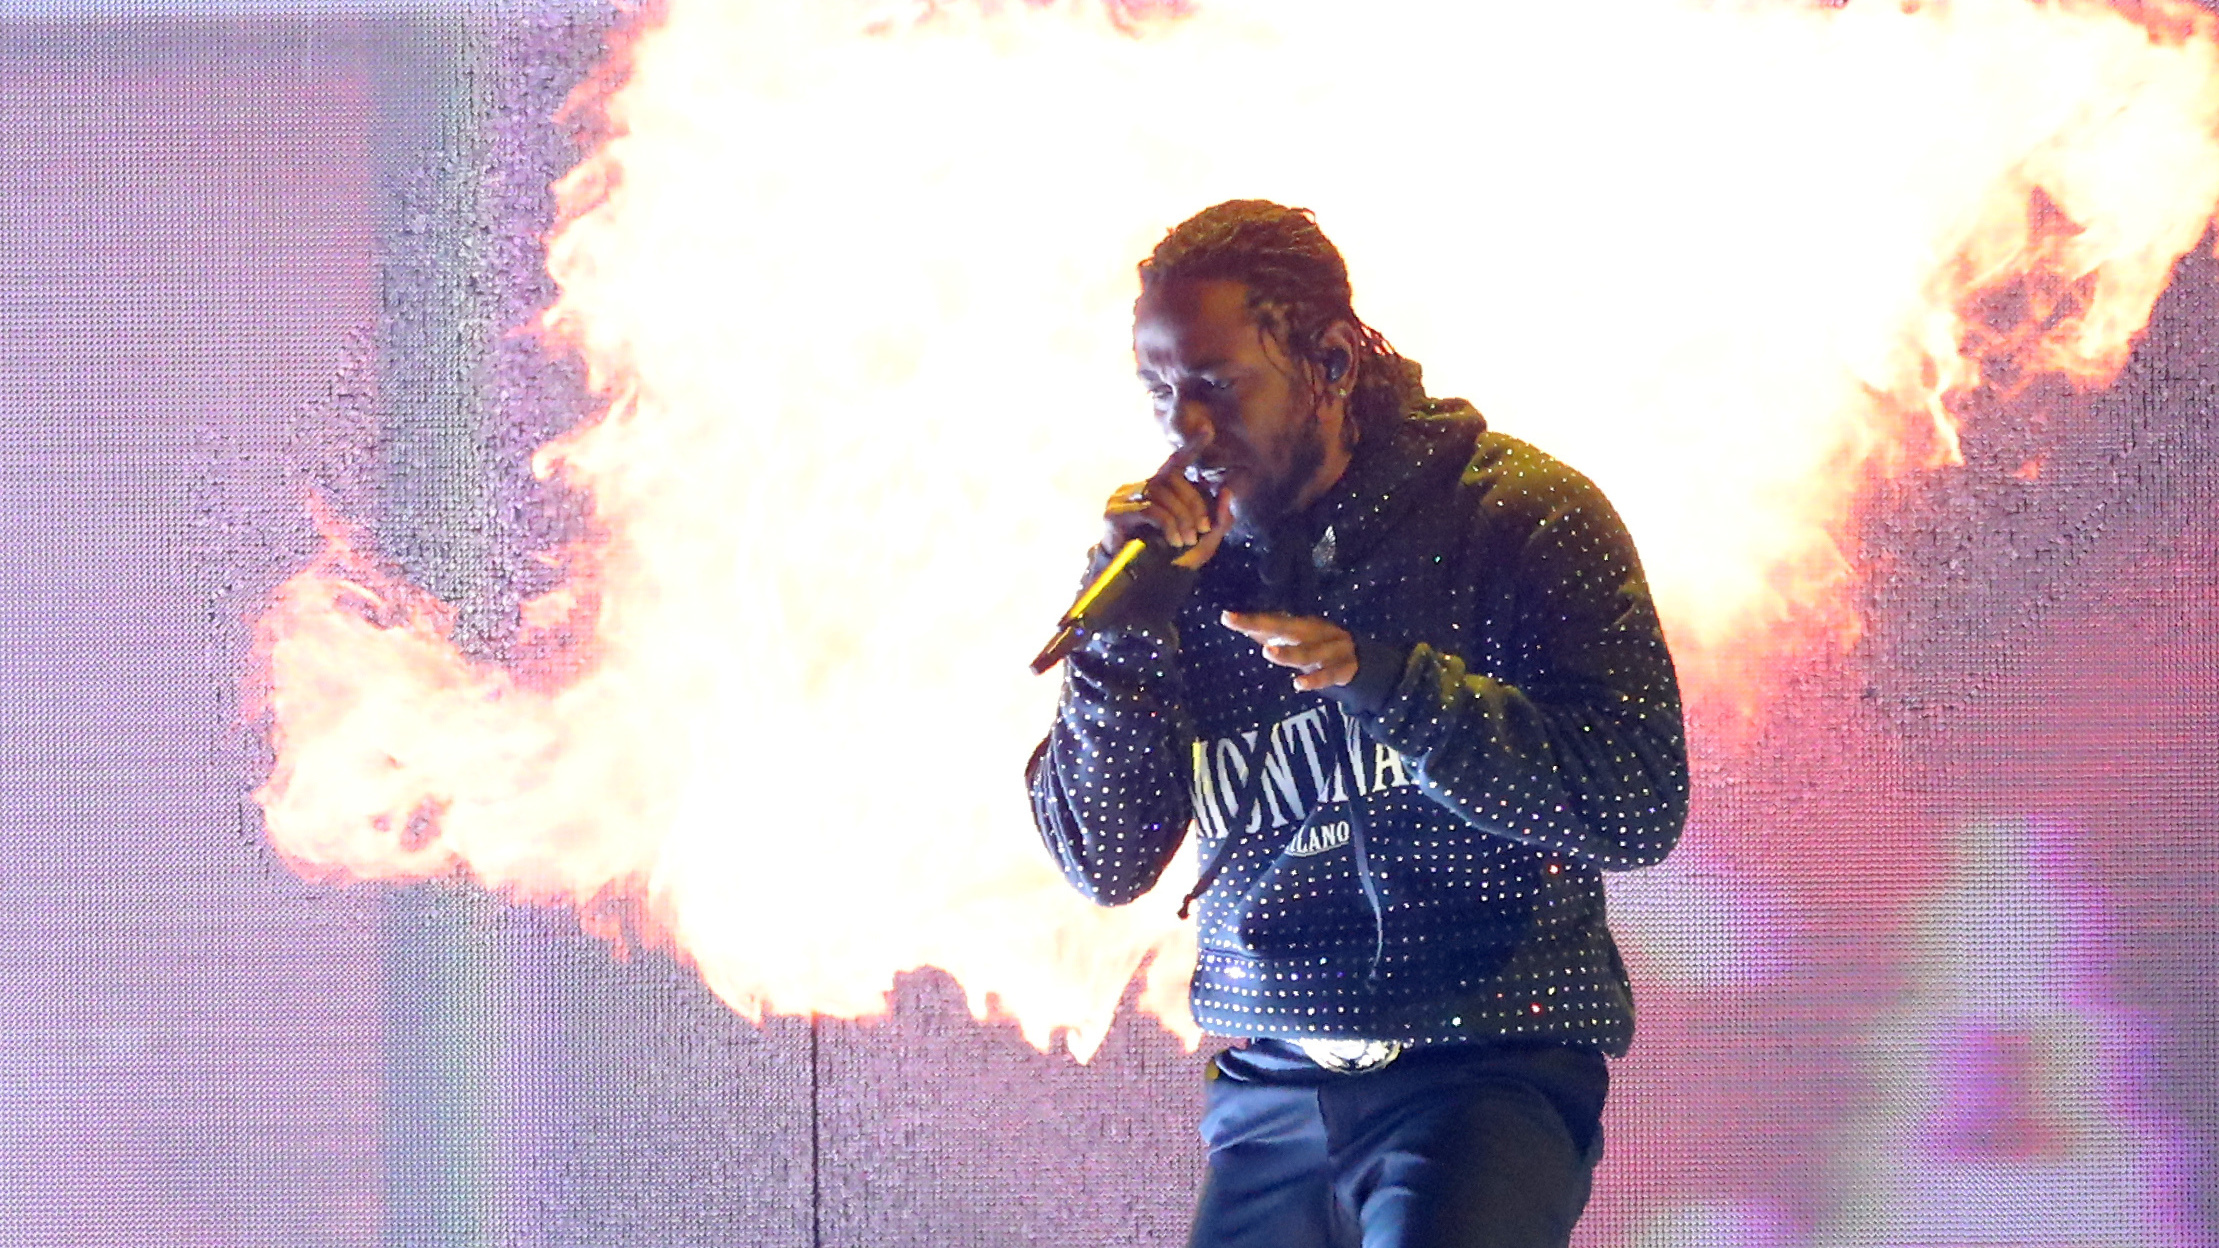 Rapper Kendrick Lamar takes home Pulitzer Prize for music